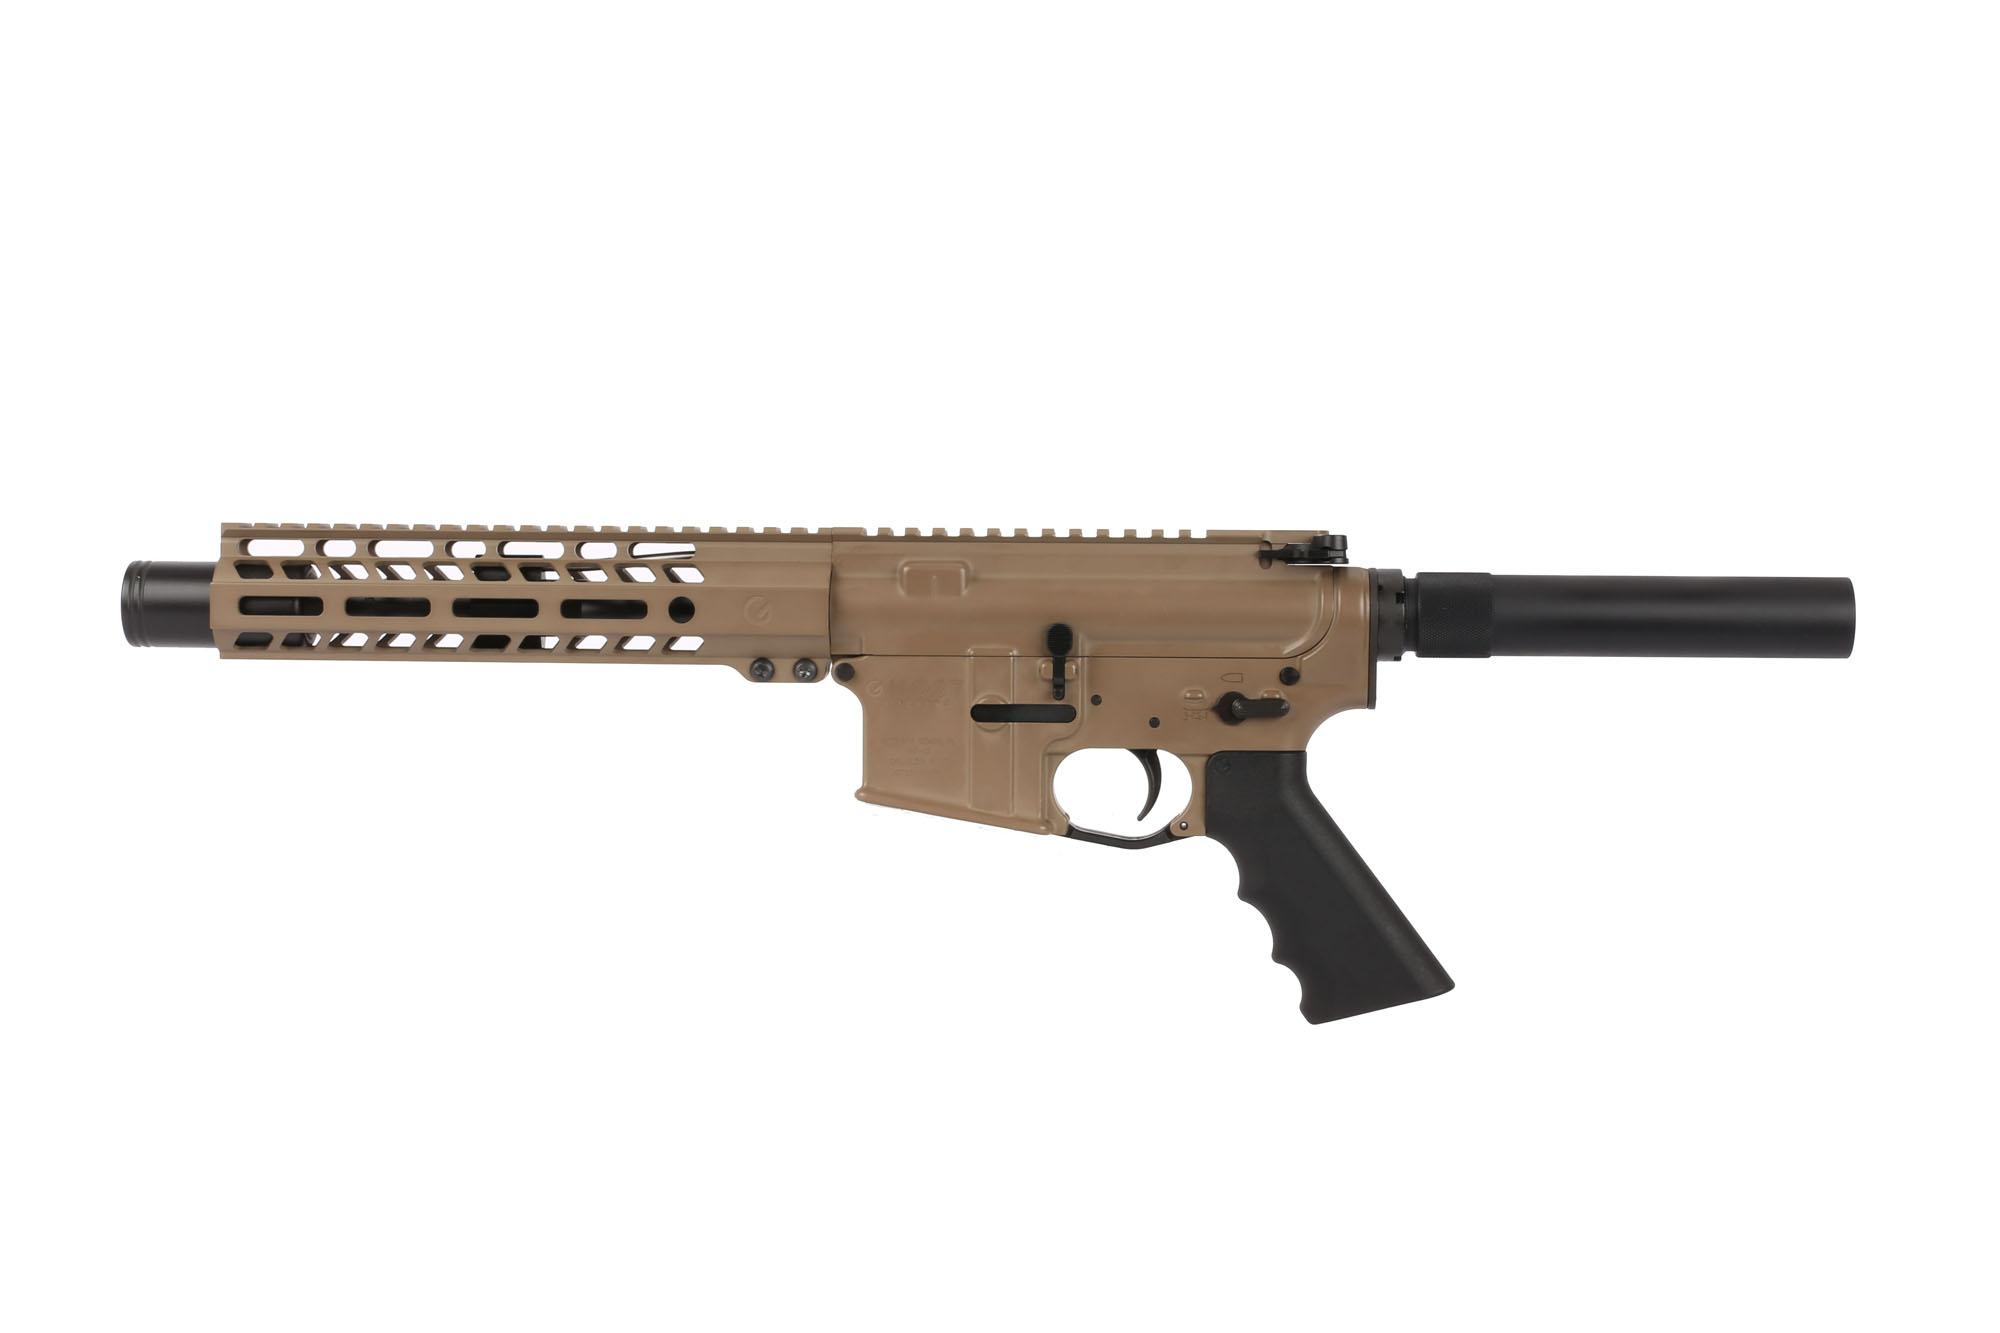 The Ghost Firearms AR-15 pistol with flash can and FDE Cerakote is the best